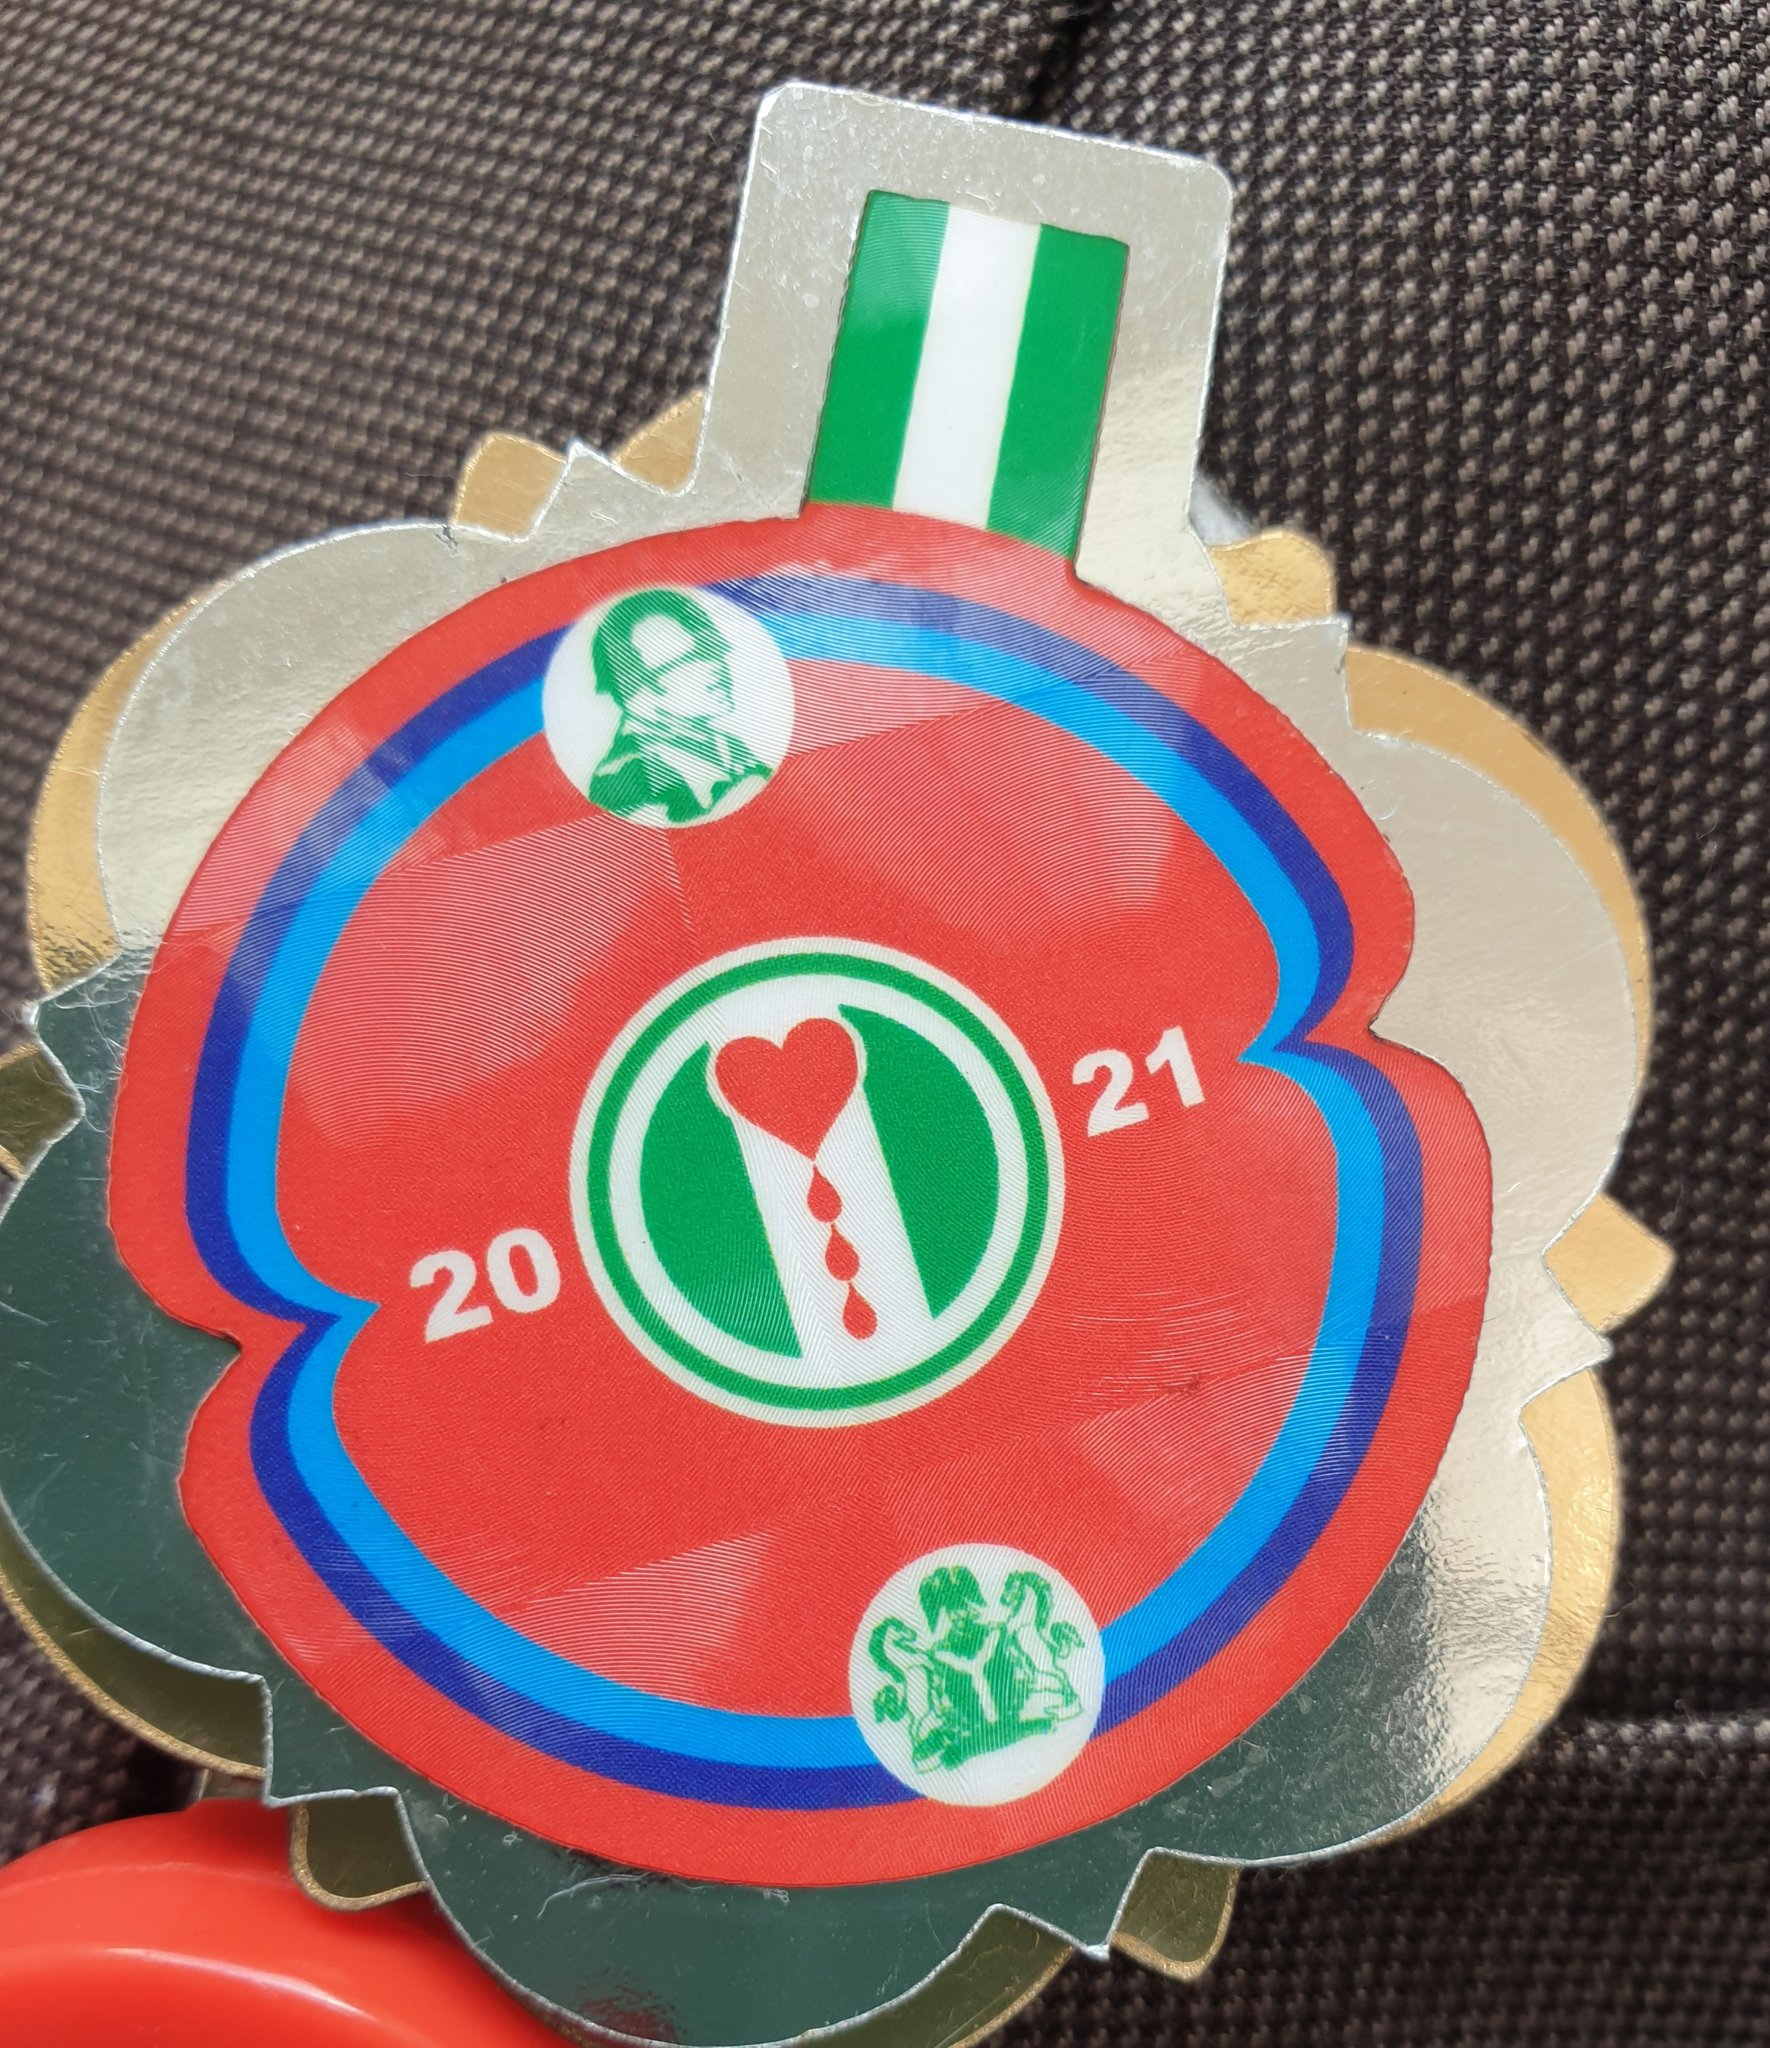 Buhari launches 2021 armed forces remembrance emblem with N10m